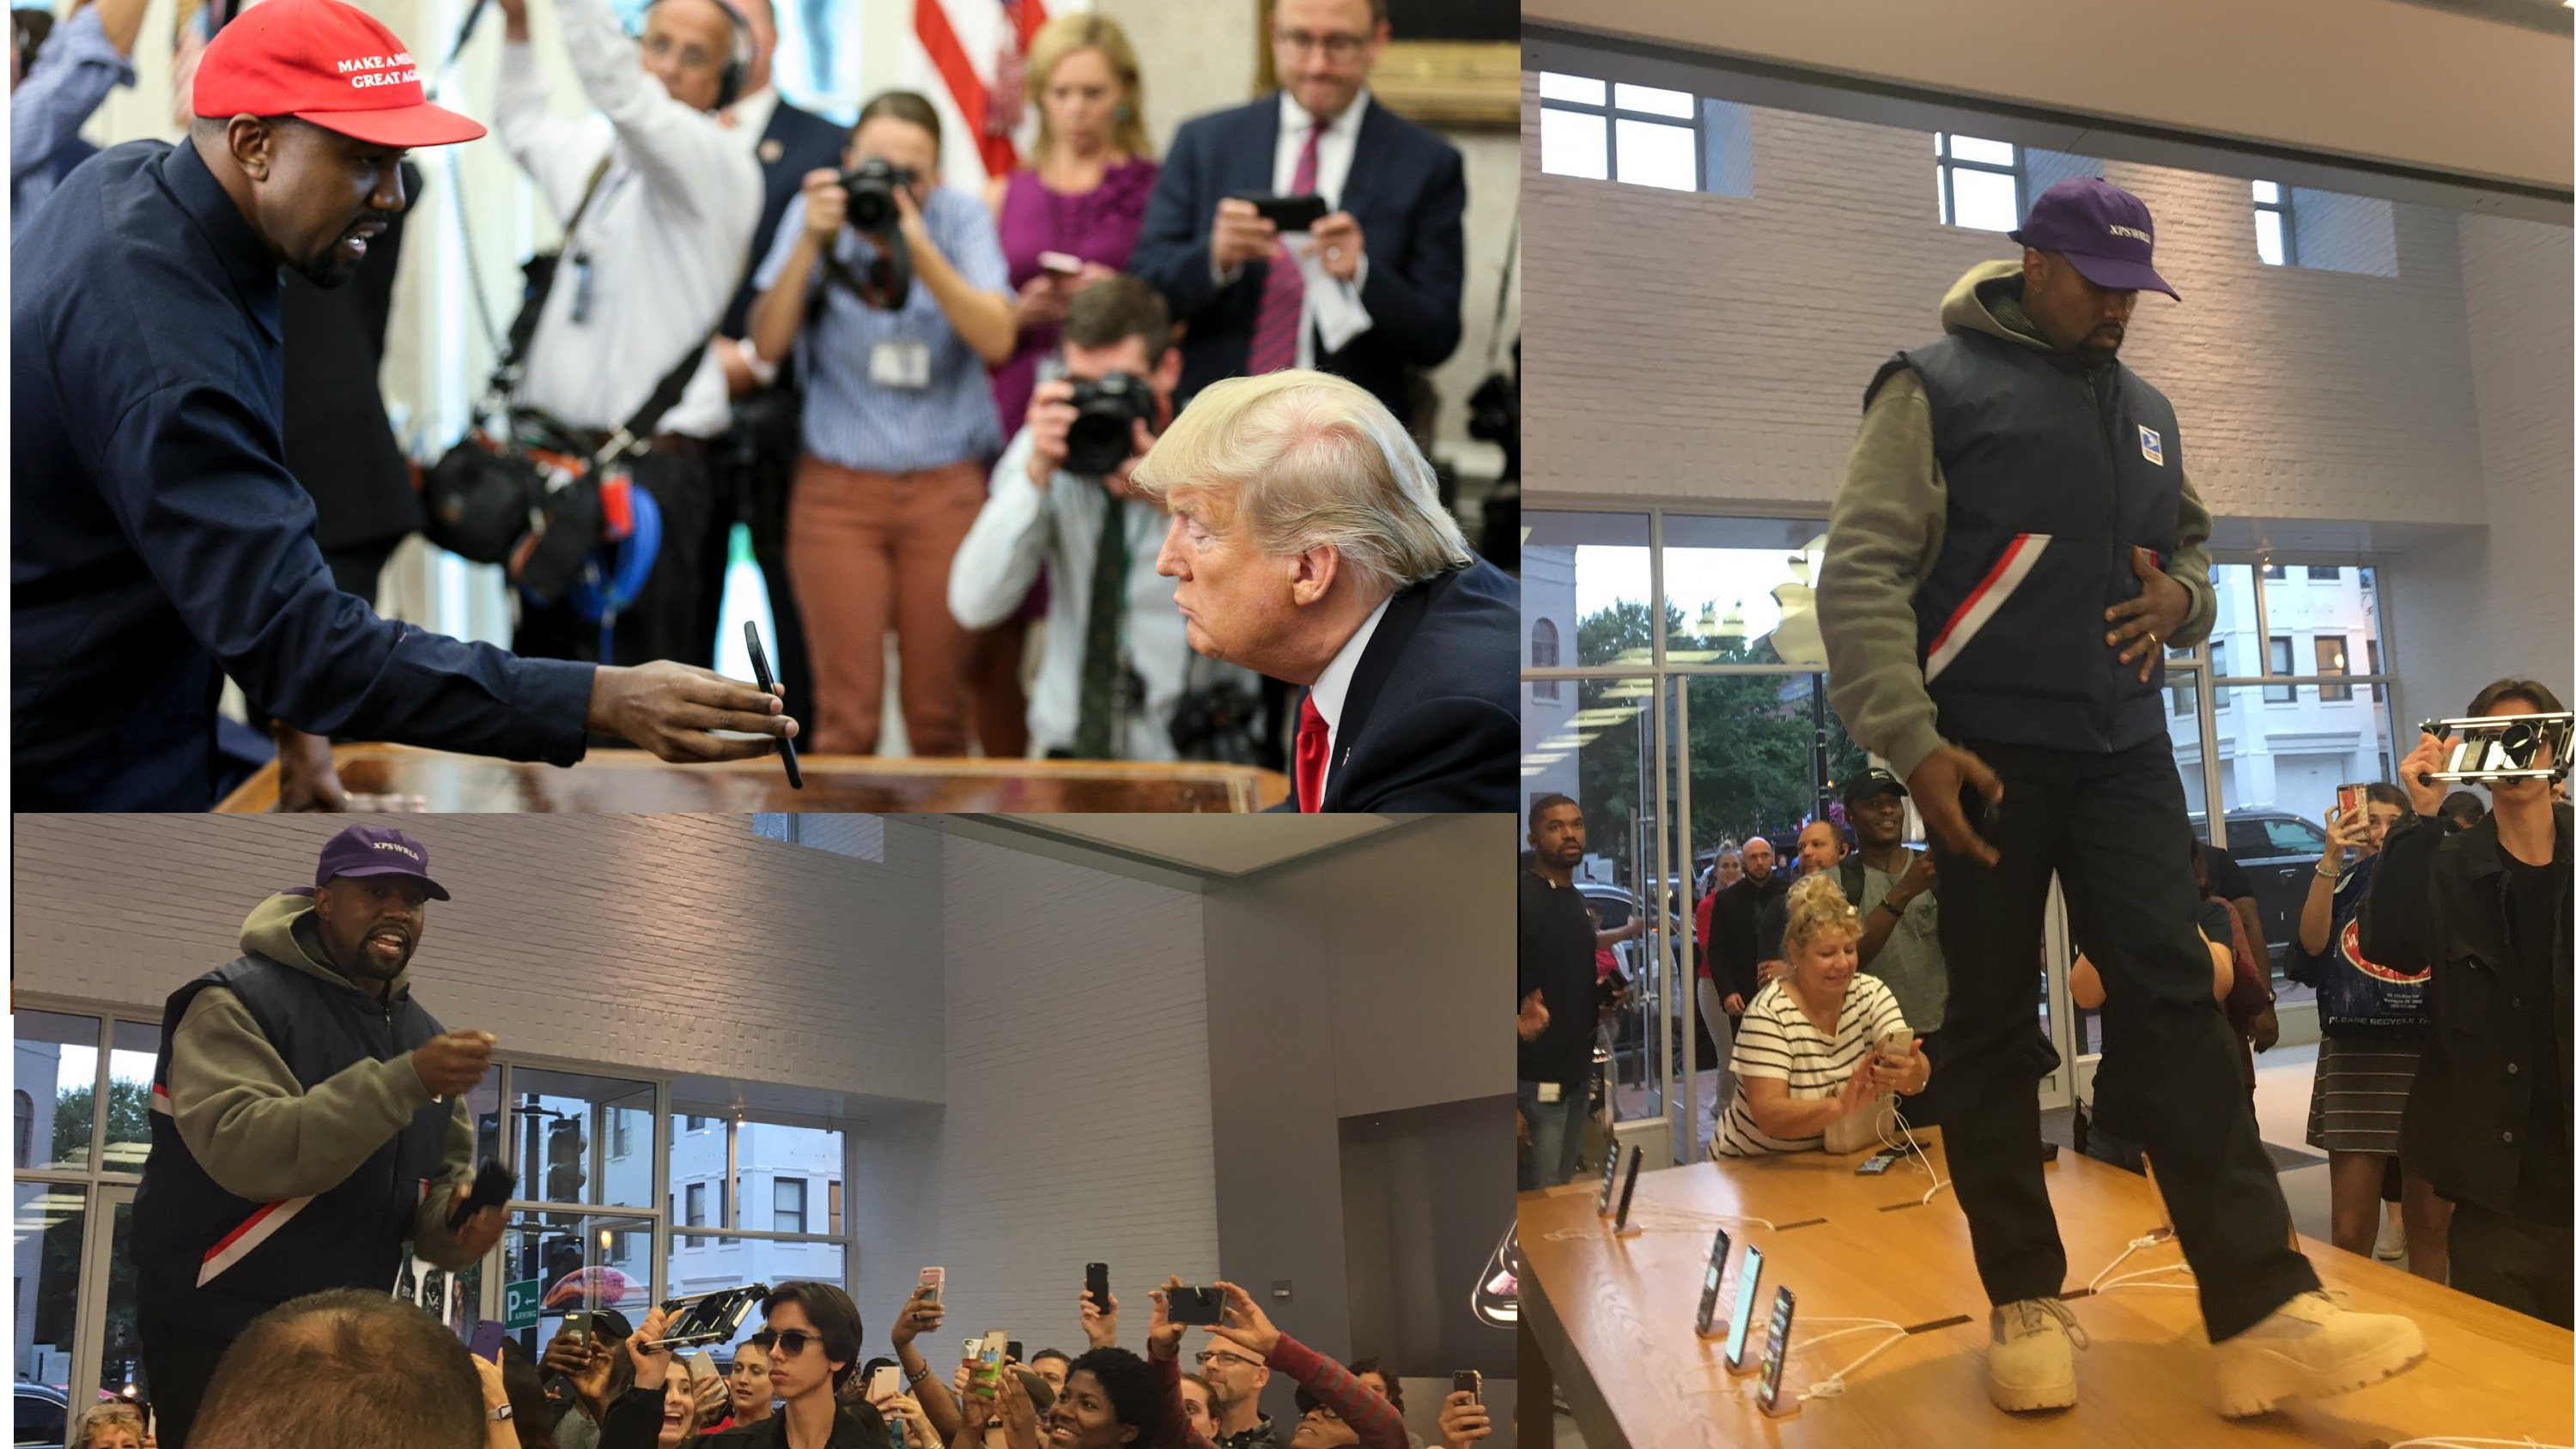 kanye west pitches trump on iplane built by apple delivers table top apple store keynote